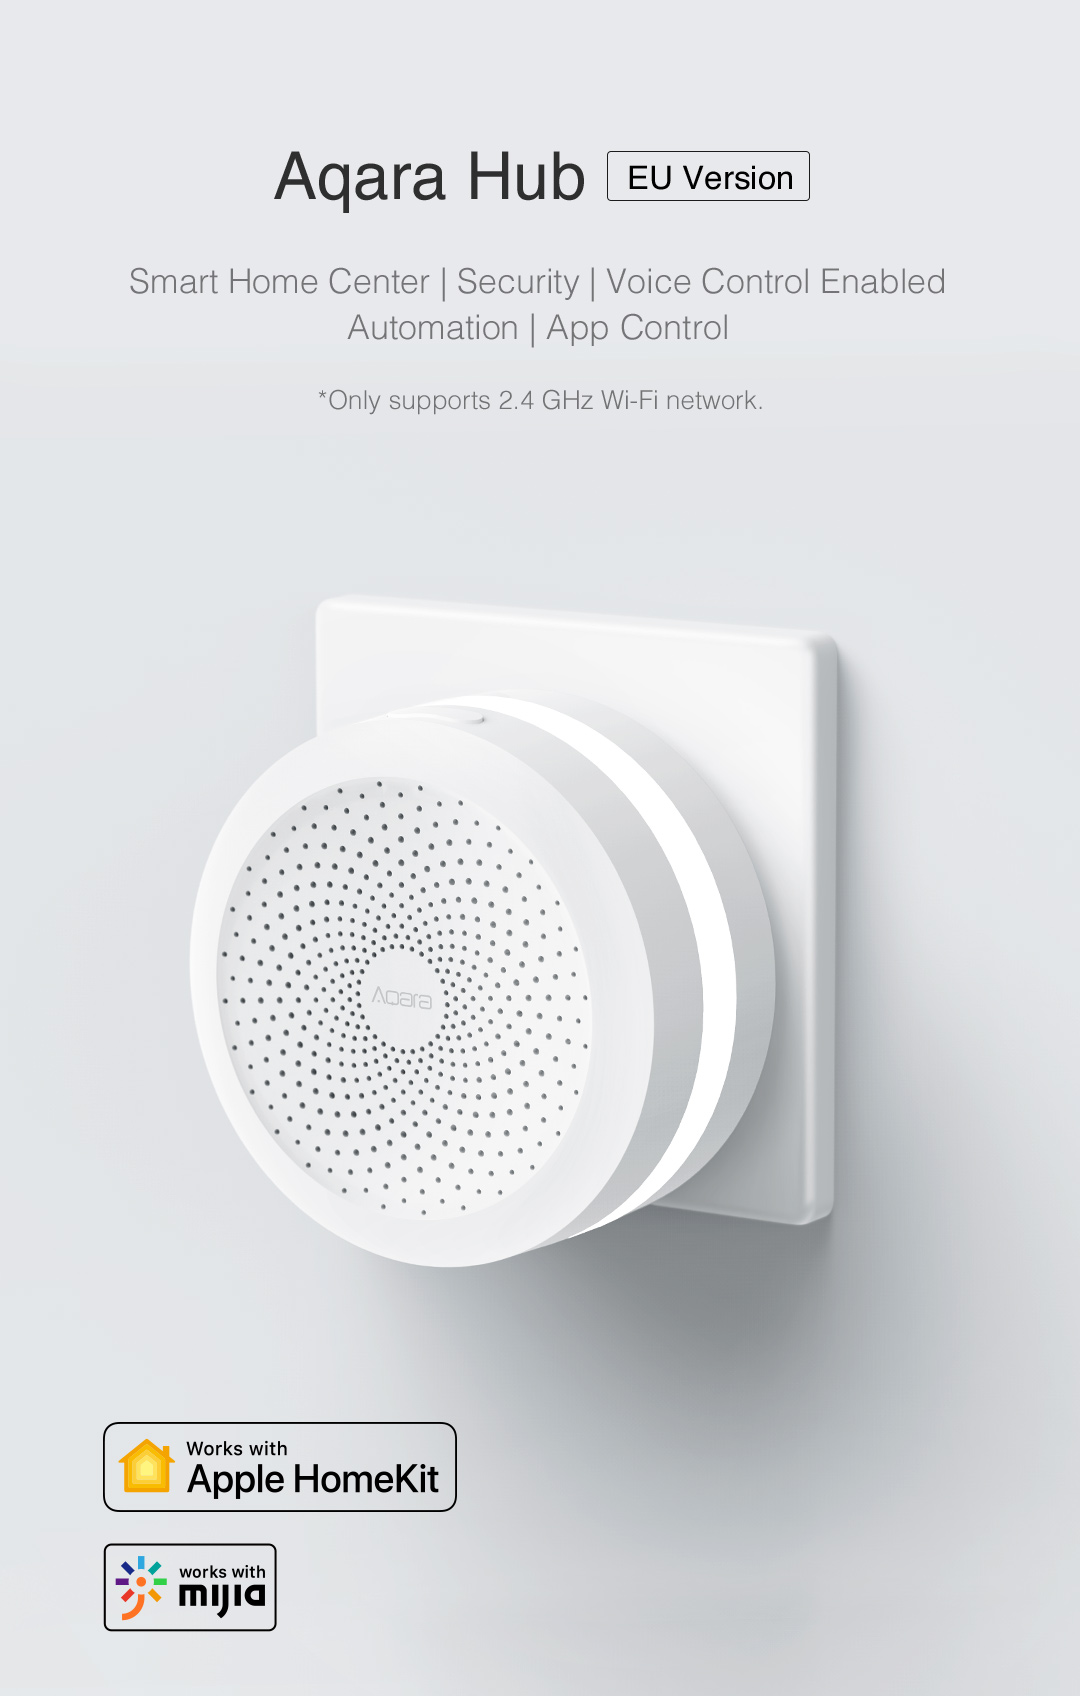 Aqara Hub eu version - homekit smart home hub that works with Apple HomeKit, Google Assistant and Mijia